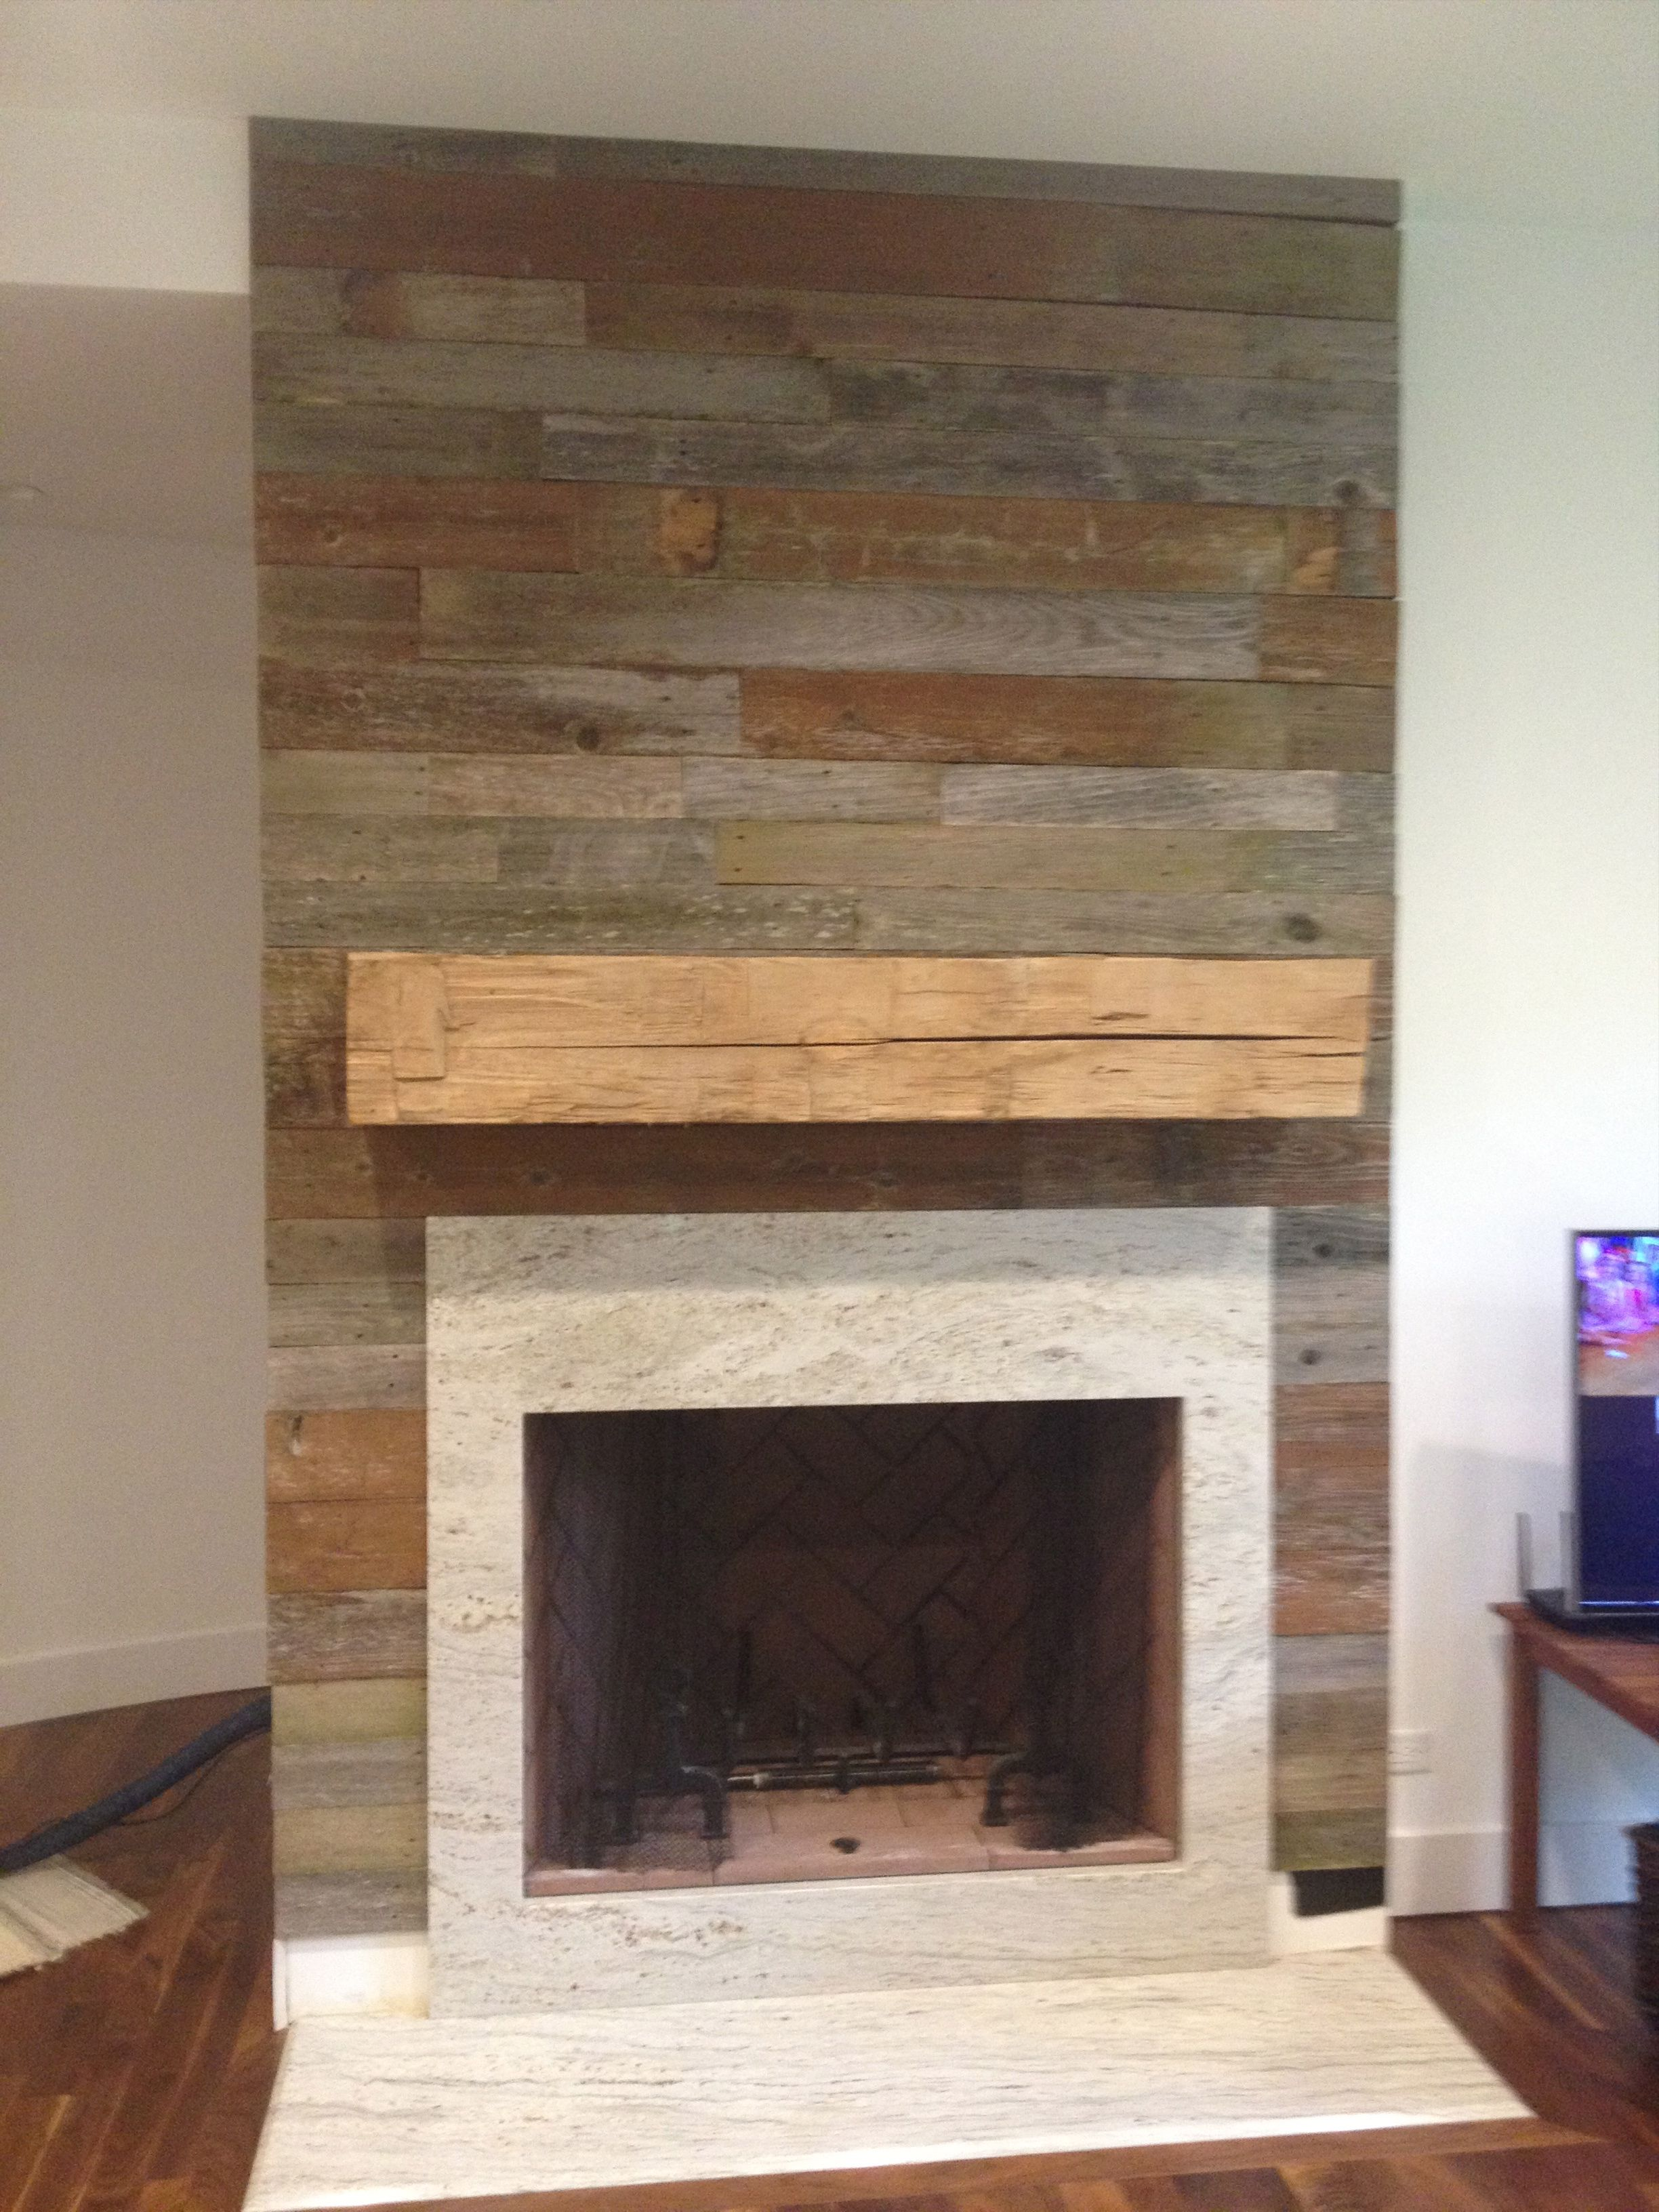 Reclaimed wood fireplace surround and mantel Reclaimed wood fireplace surround and mantel    Fireplaces  . Old Wood Fireplace Mantels. Home Design Ideas